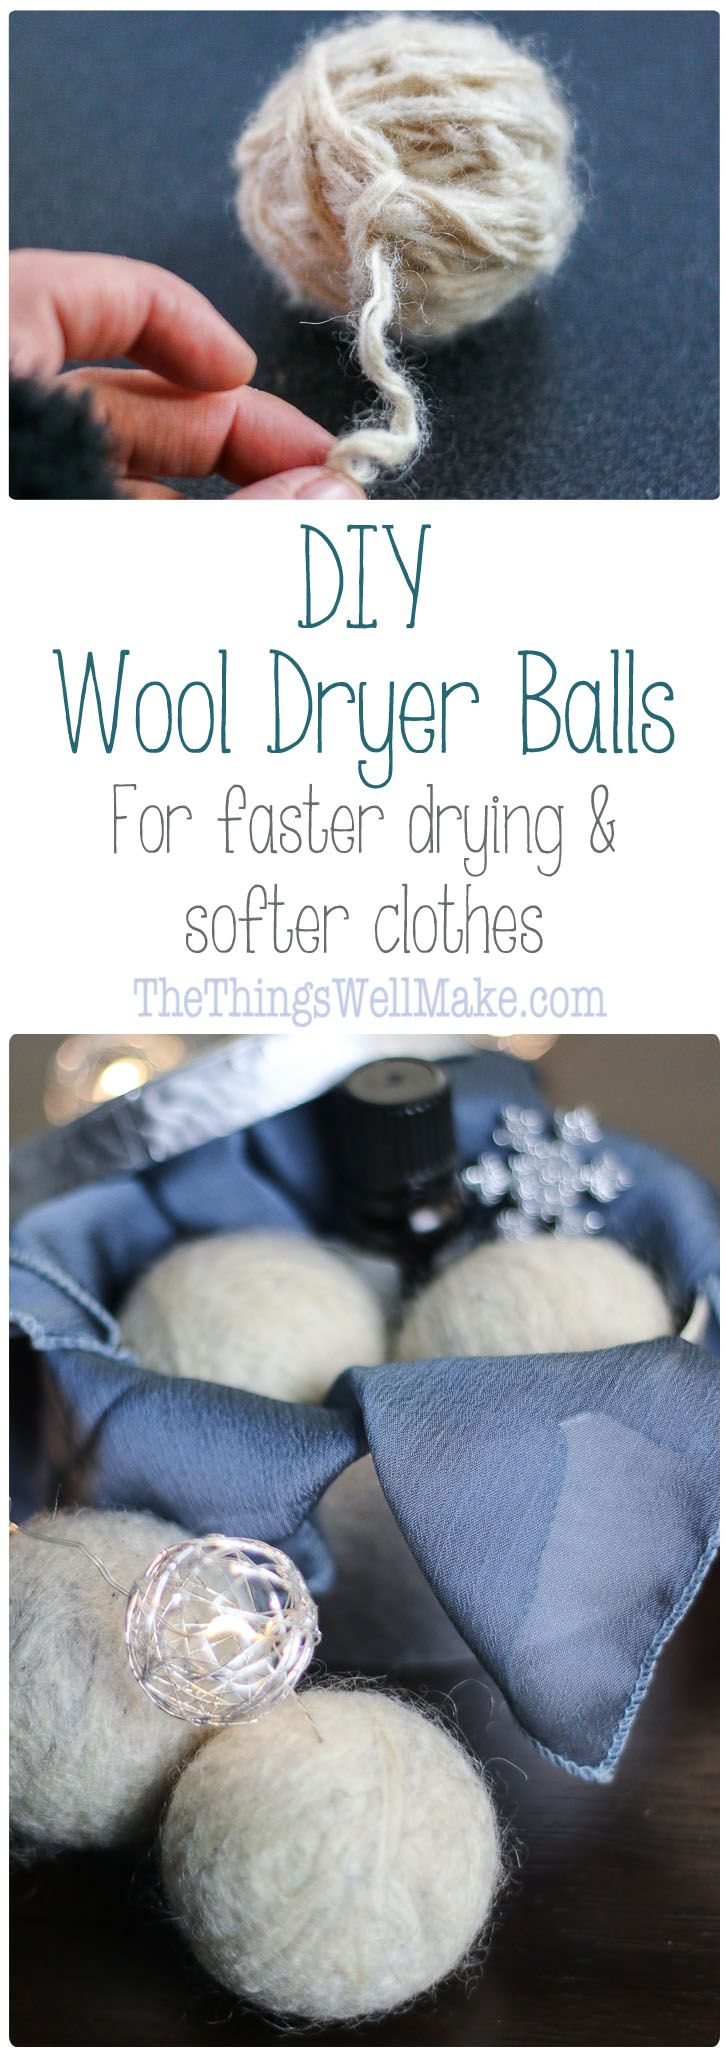 DIY wool dryer balls are easy to make, and are a simple, ecological way to soften clothes in the dryer. They can reduce dryer time and, perhaps, static cling.